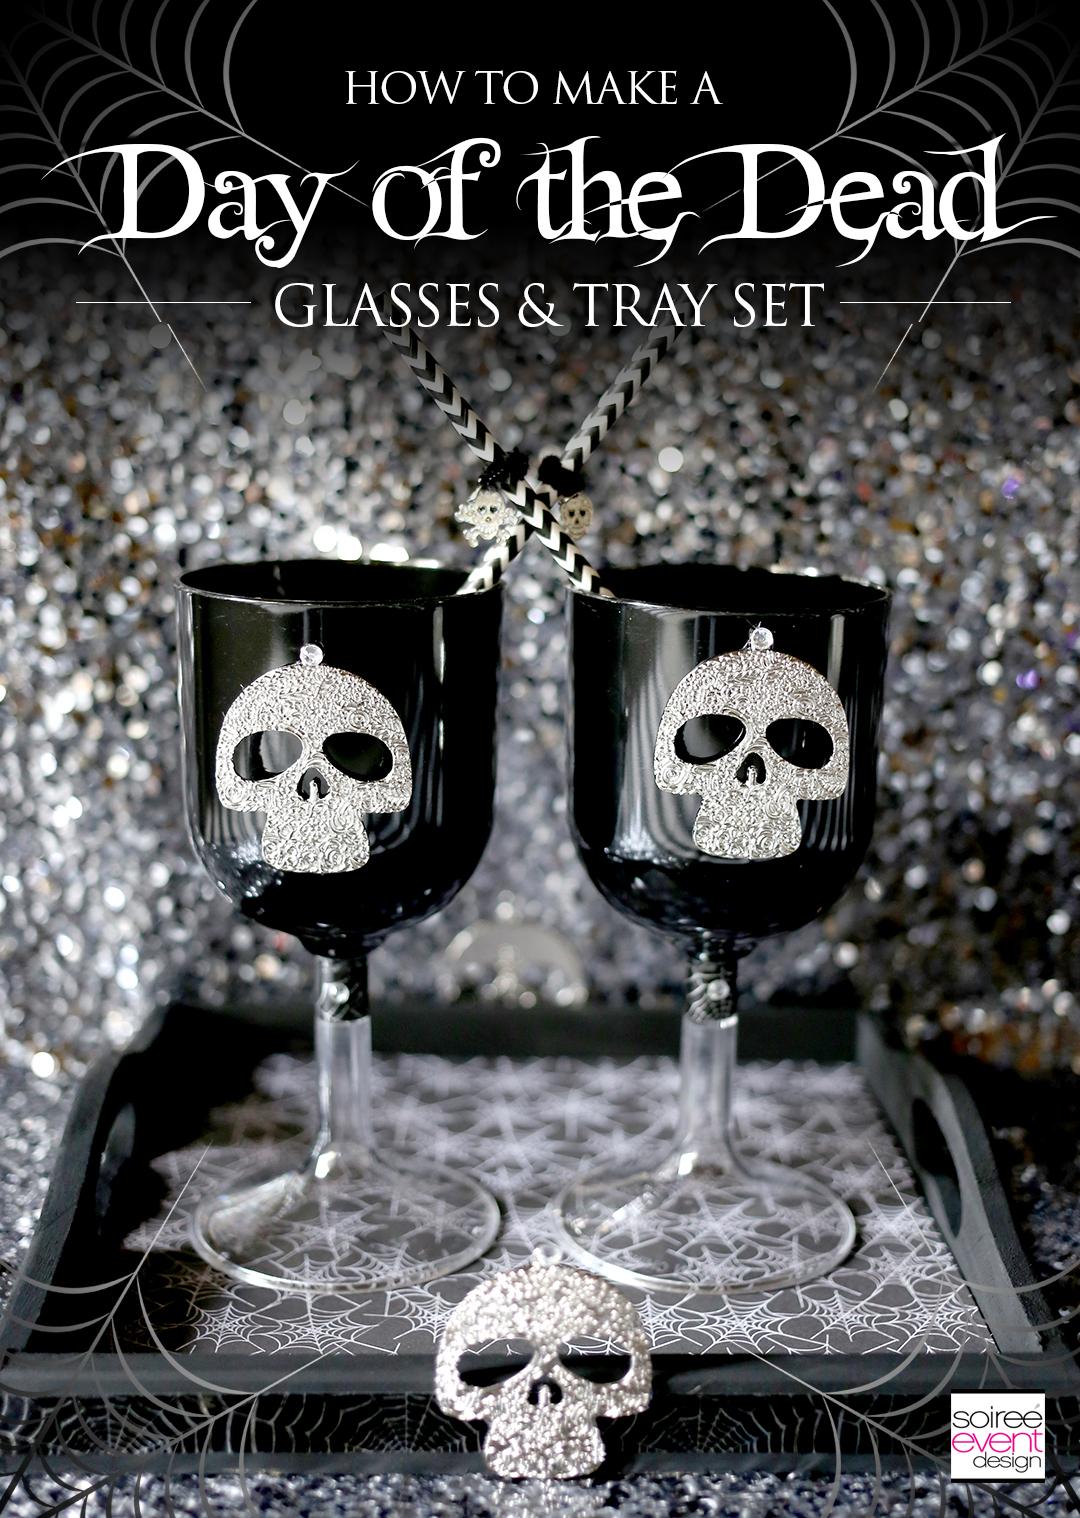 diy-day-of-the-dead-decorations-glasses-and-tray